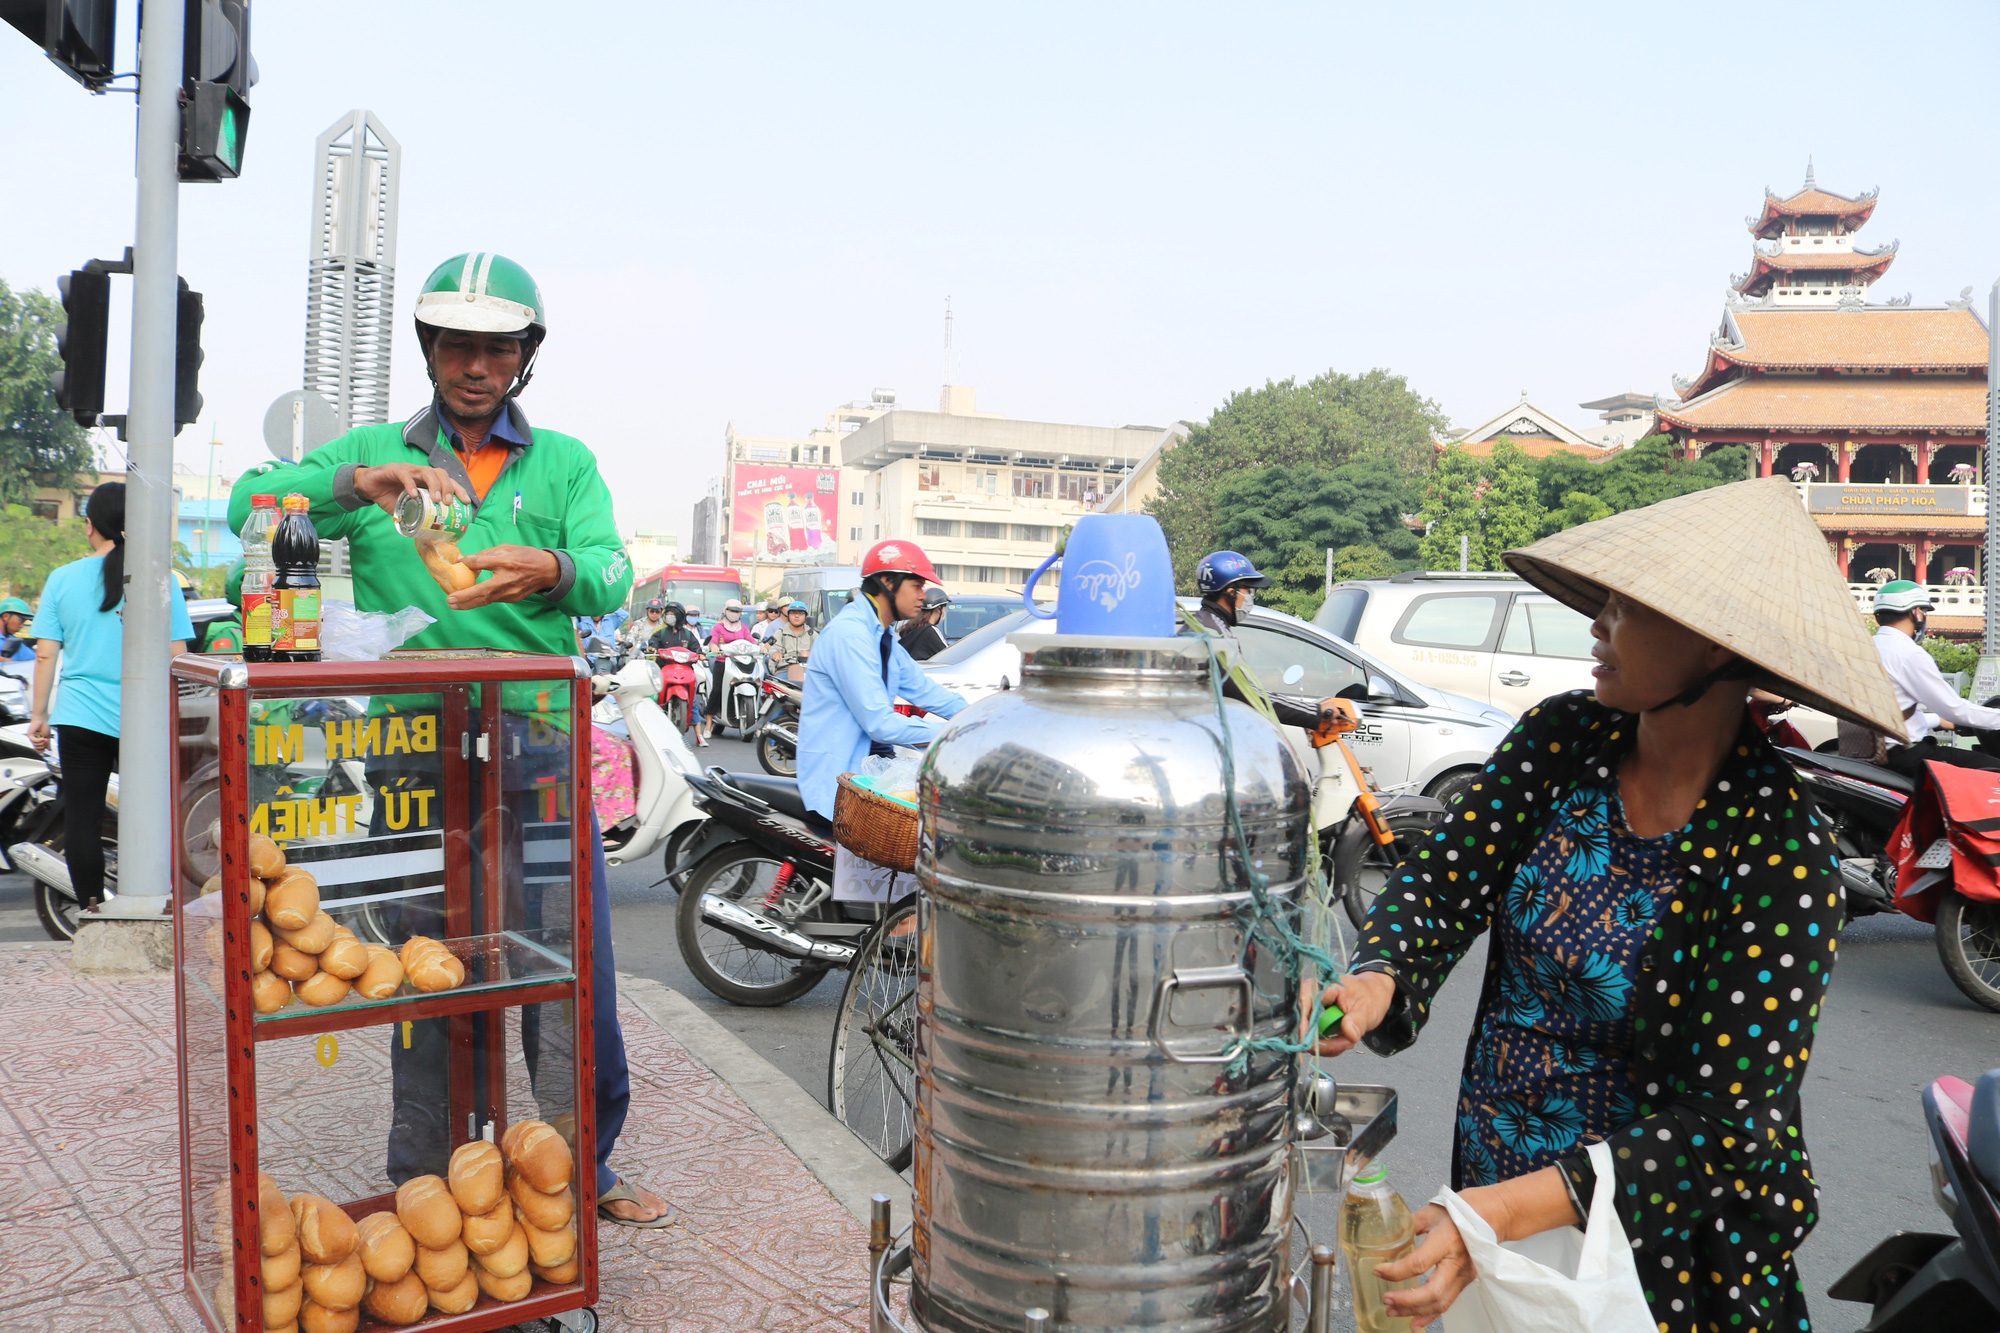 A man prepares a bread as a woman fills her bottle with iced tea at a free bread box donated by college student Nguyen Thi My Dung in Ho Chi Minh City. Photo: Ngoc Phuong / Tuoi Tre